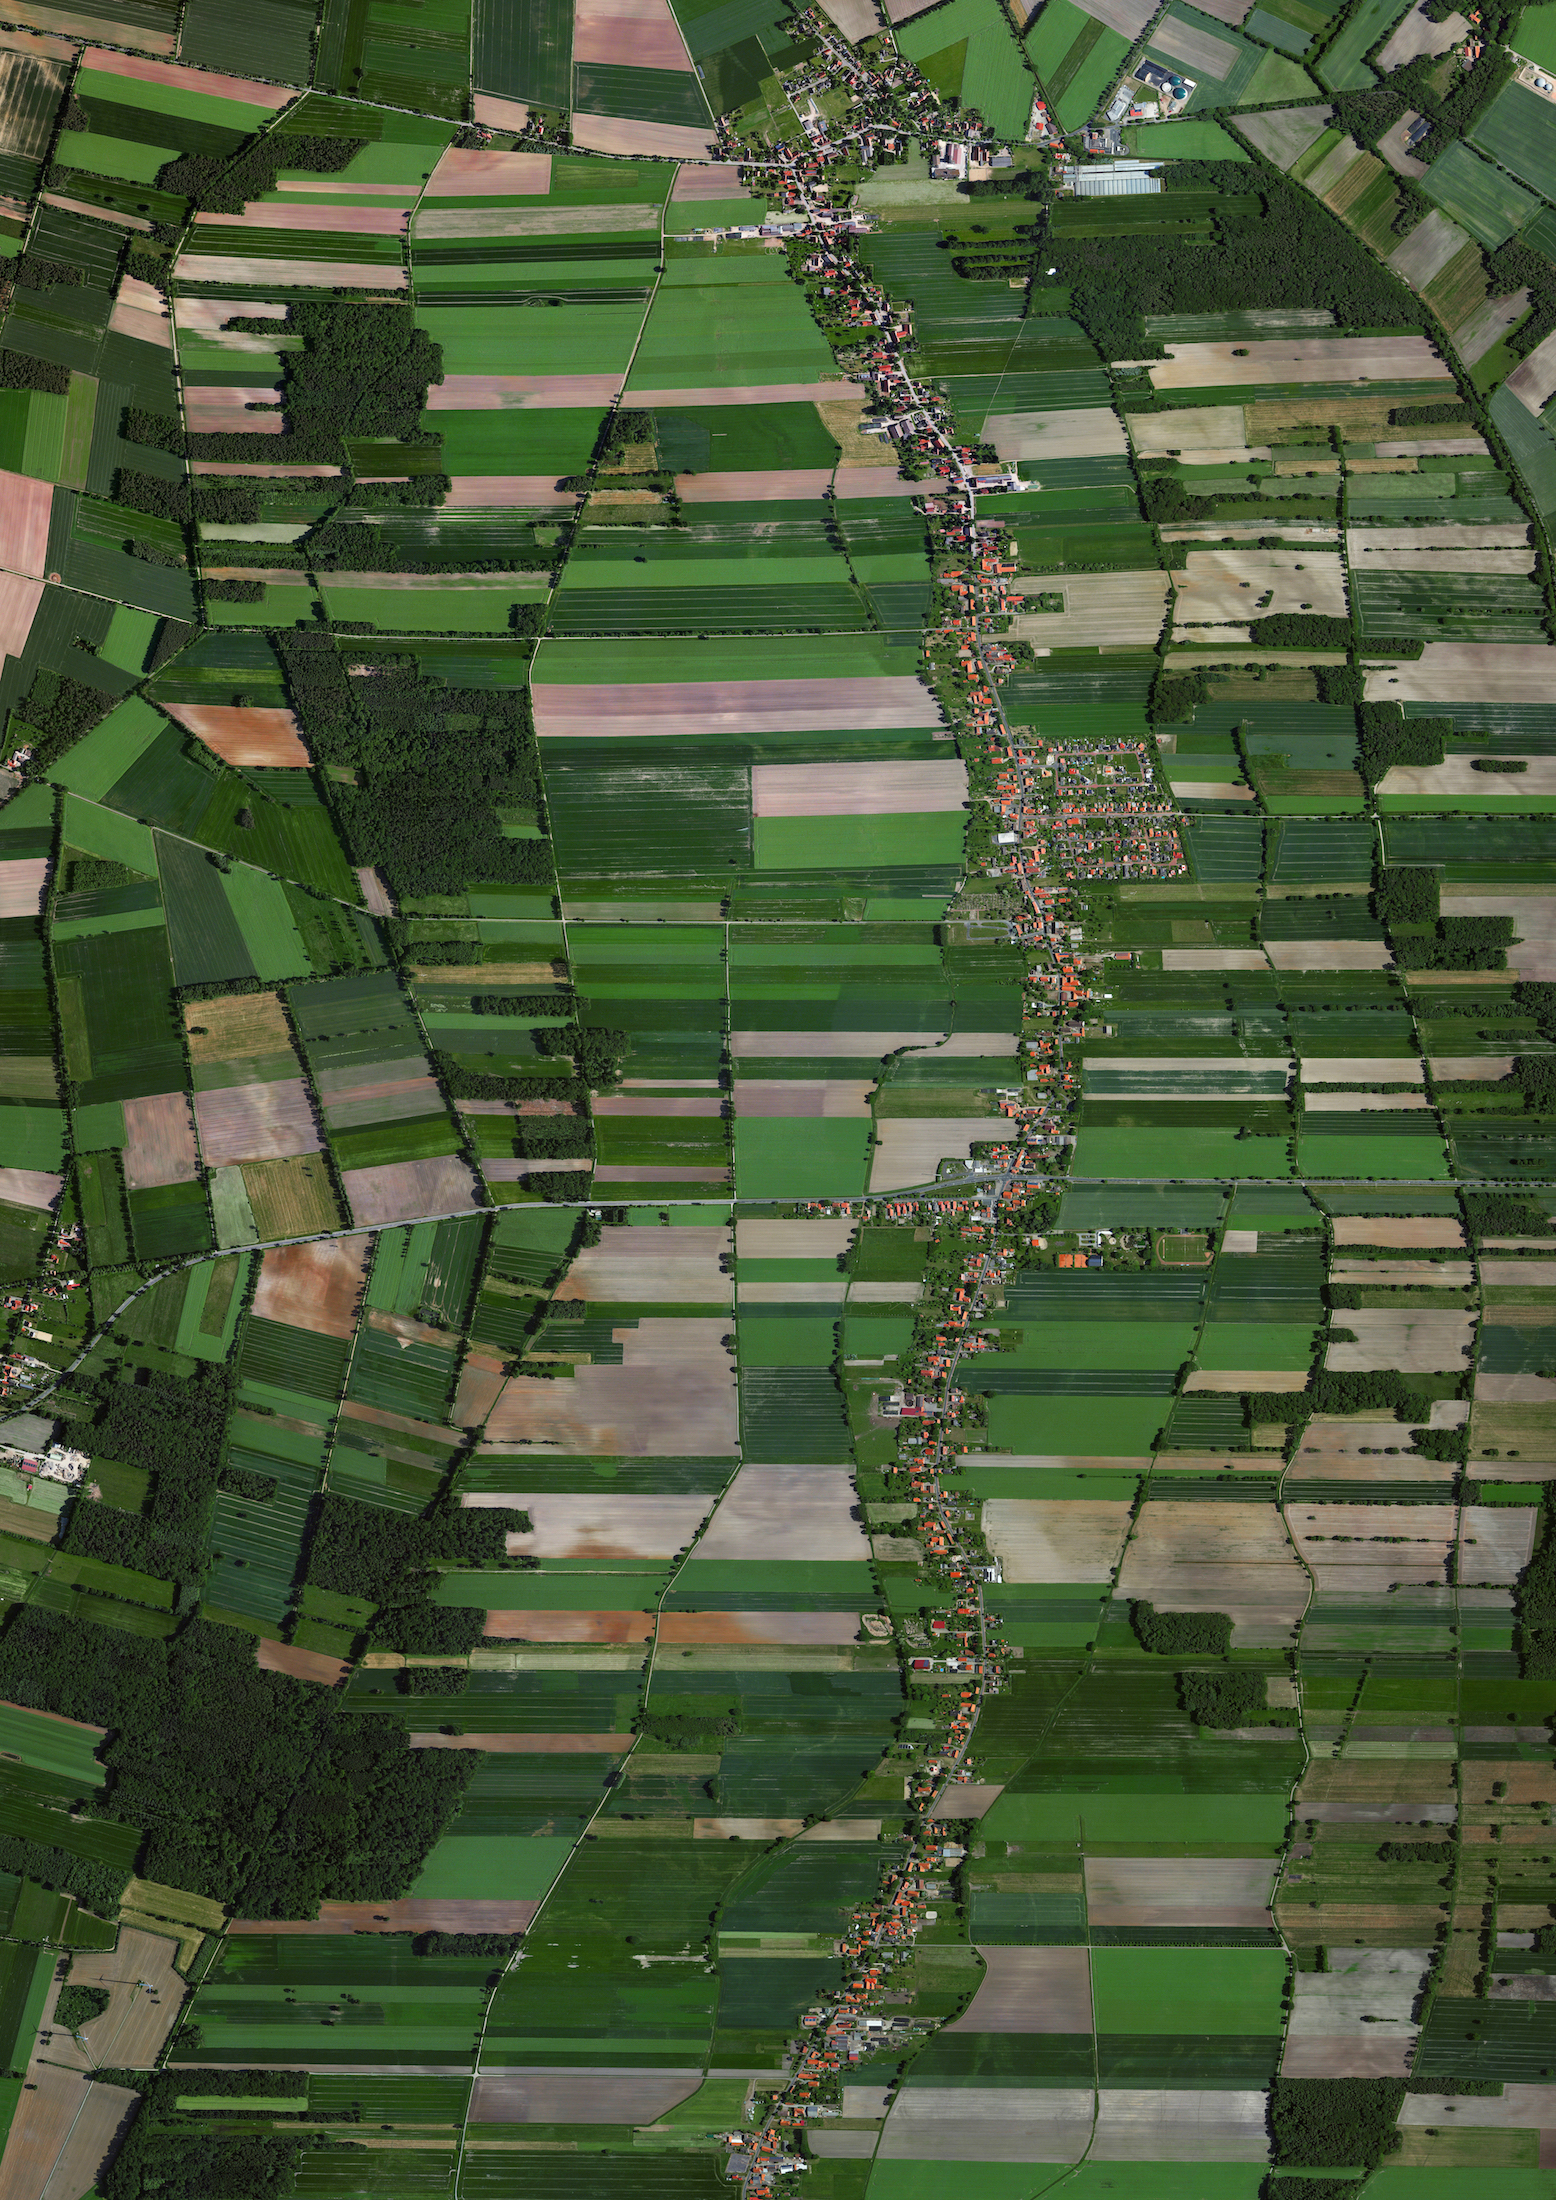 5/28/2016  Rodewald  Rodewald, Germany  52°39′57″N 09°28′56″E    Fields surround the residential area of Rodewald, Germany. The agricultural village was first mentioned in historical records from the early 13th Century and is now home to 2,549 people.